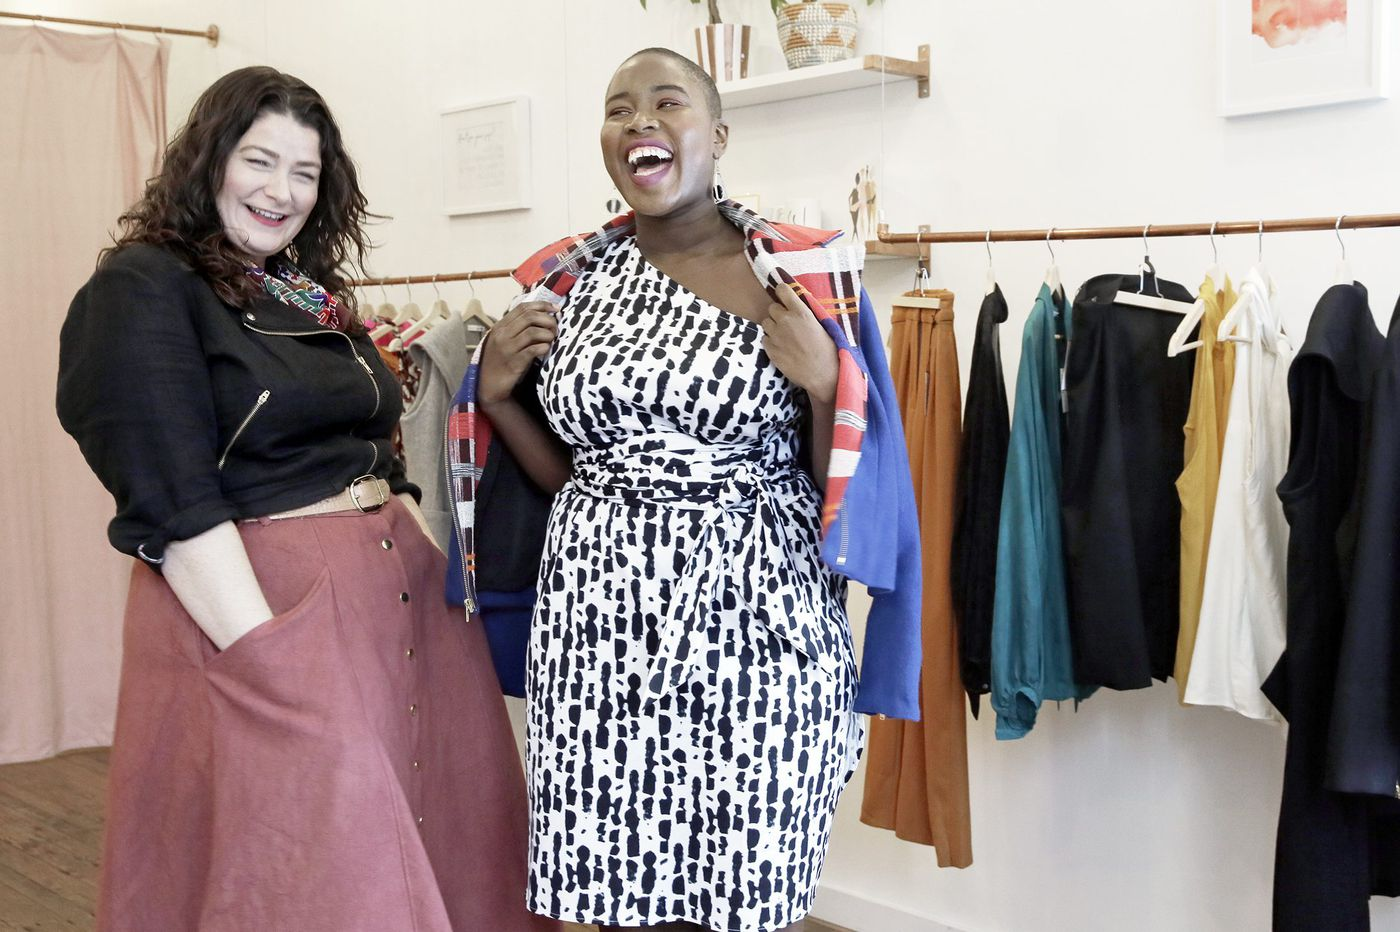 East Falls\' Alice Alexander offers custom chic to plus-size ...